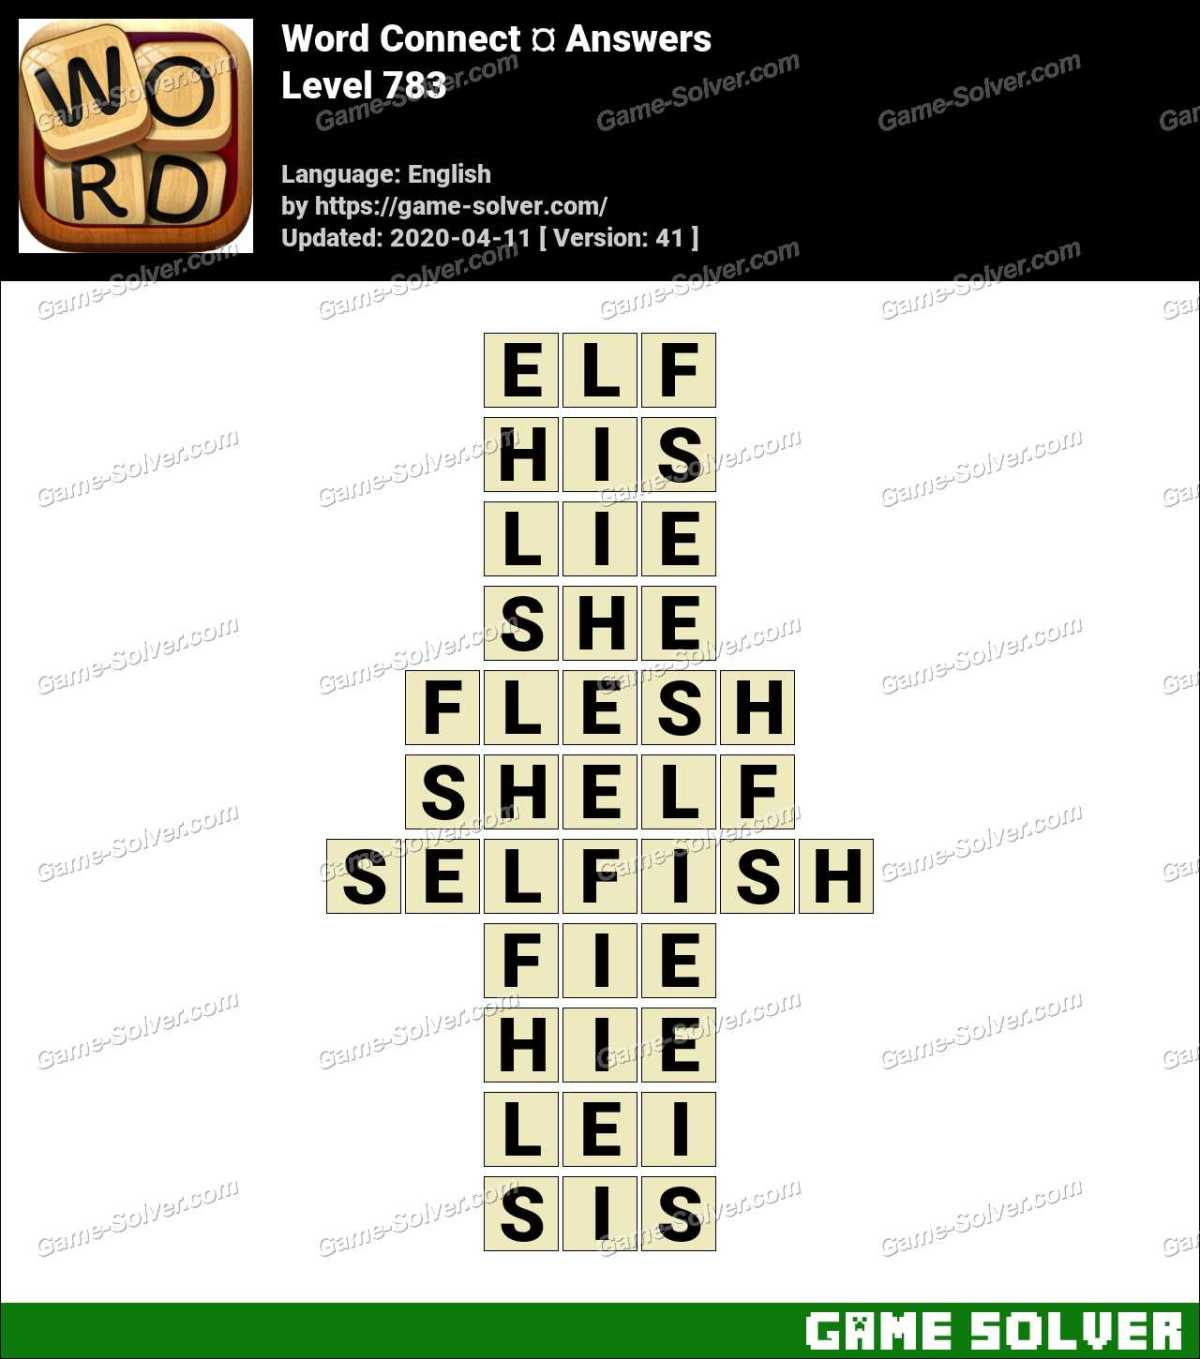 Word Connect Level 783 Answers